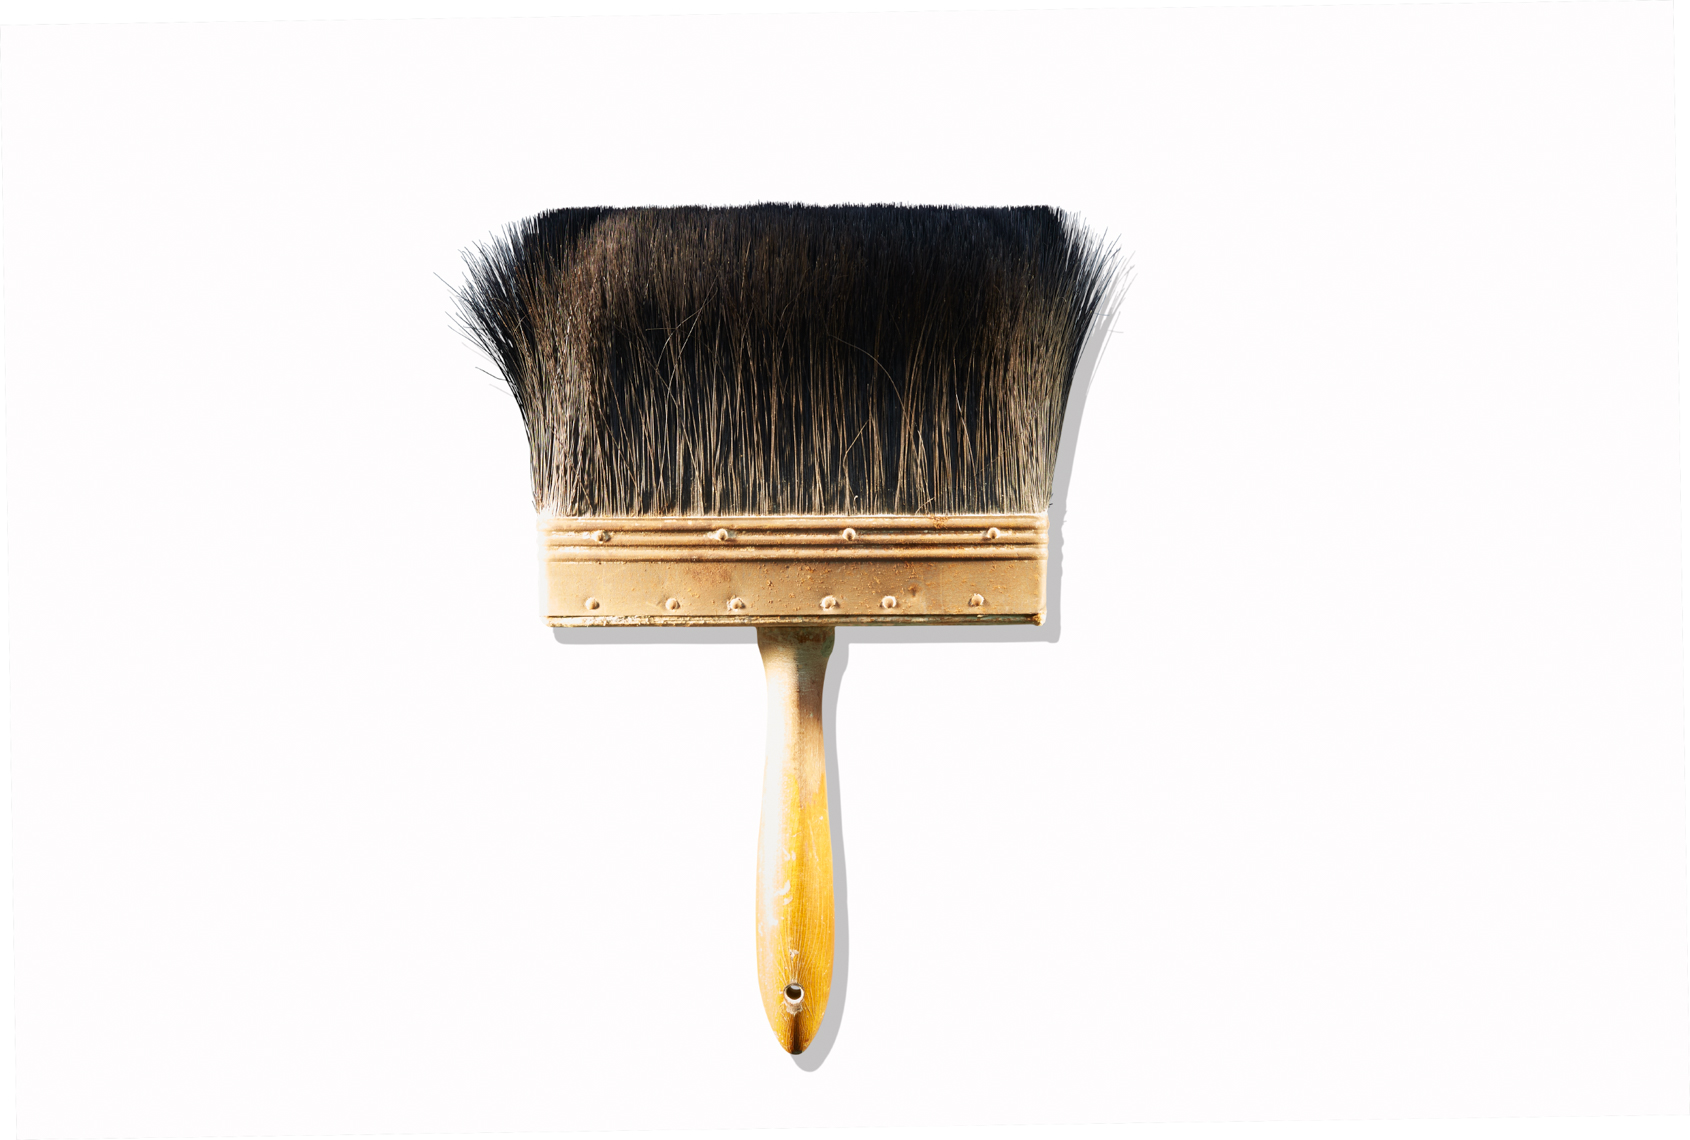 Large art  brush Philip Harvey Photography, San Francisco, California, still life, interiors, lifestyle and product photography San Francisco product photographer